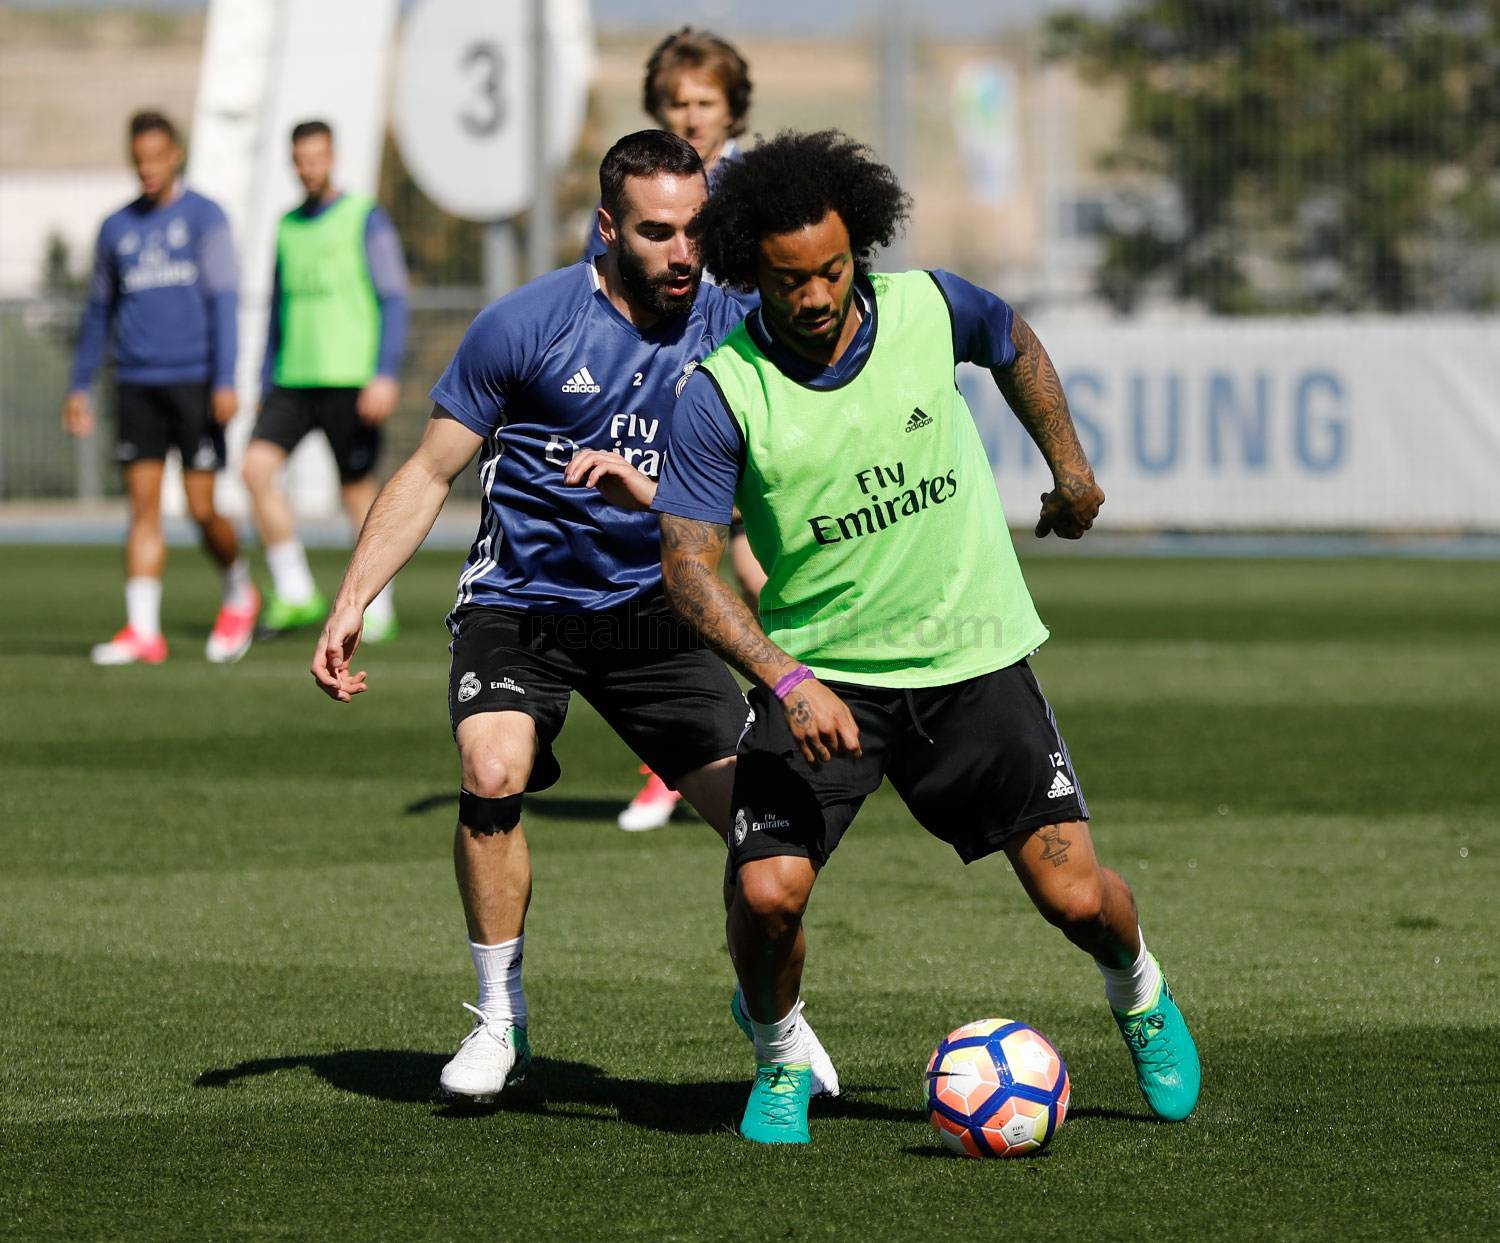 Real Madrid - Entrenamiento del Real Madrid - 07-04-2017